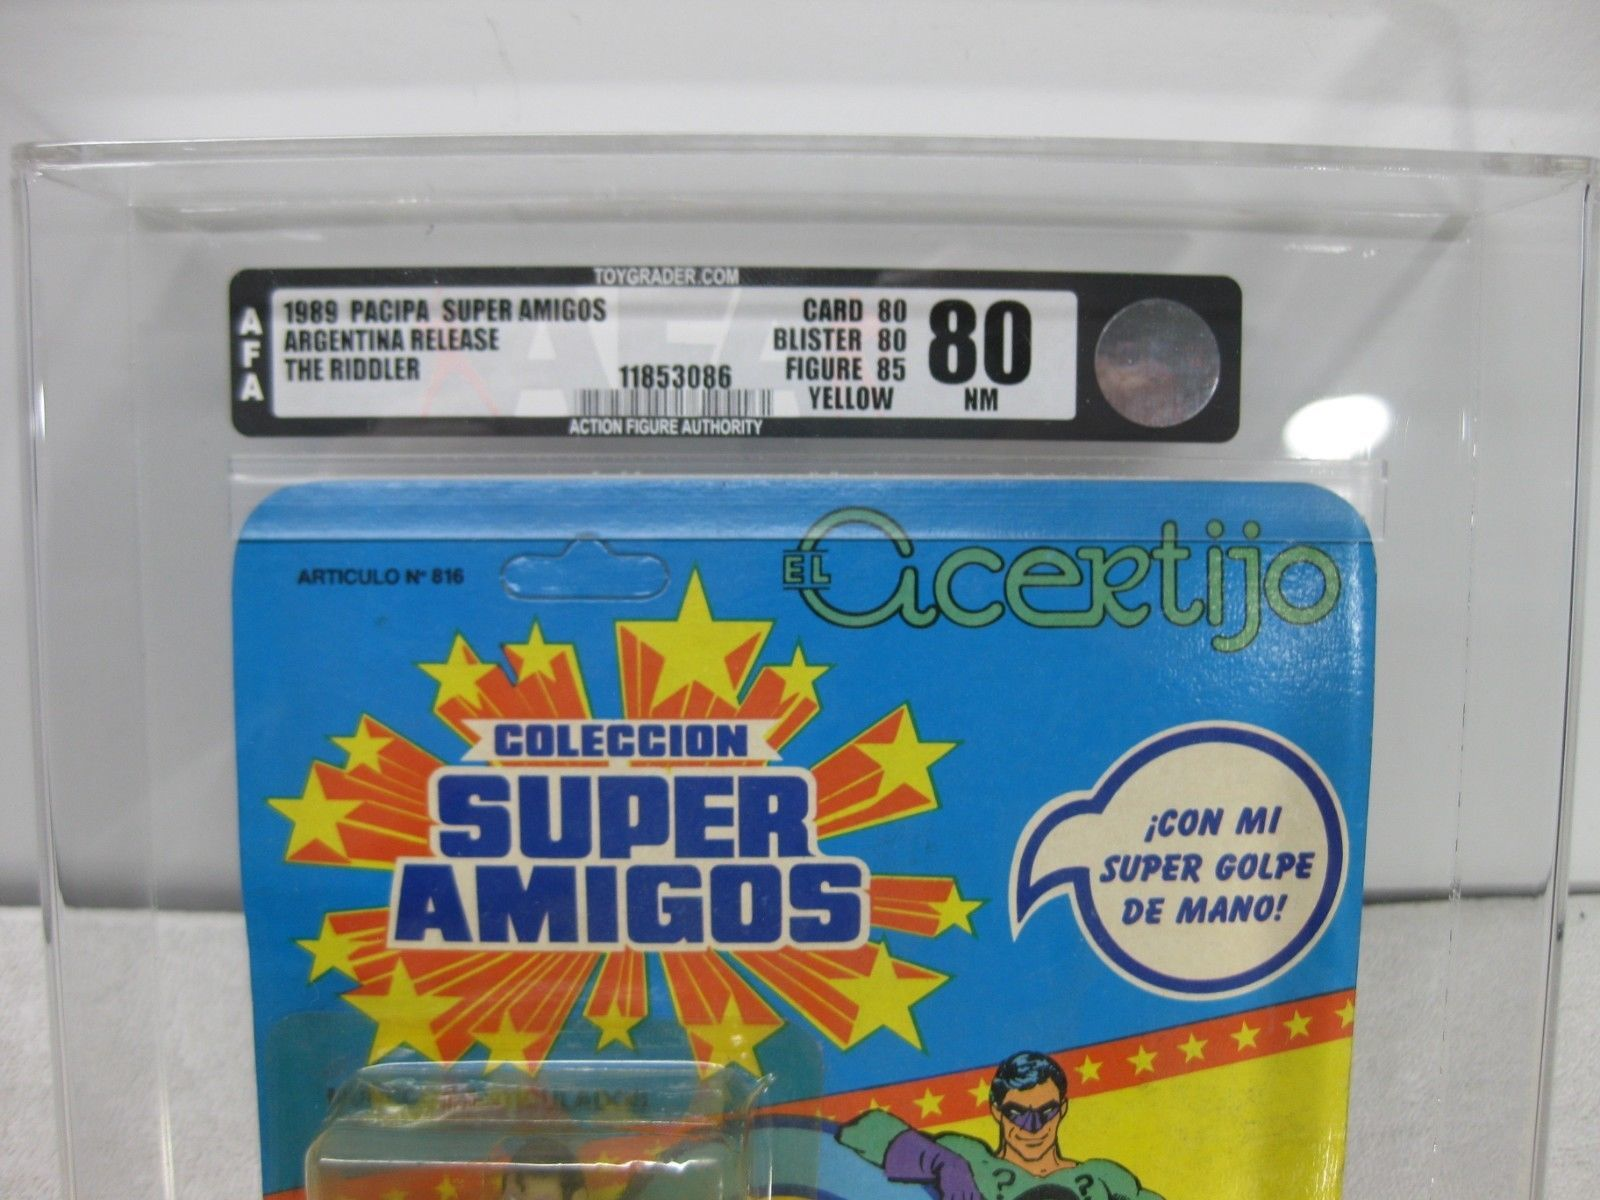 1989 Super Powers ,,Super Amigos Pacipa Argentina Release The Riddler AFA 80 NM